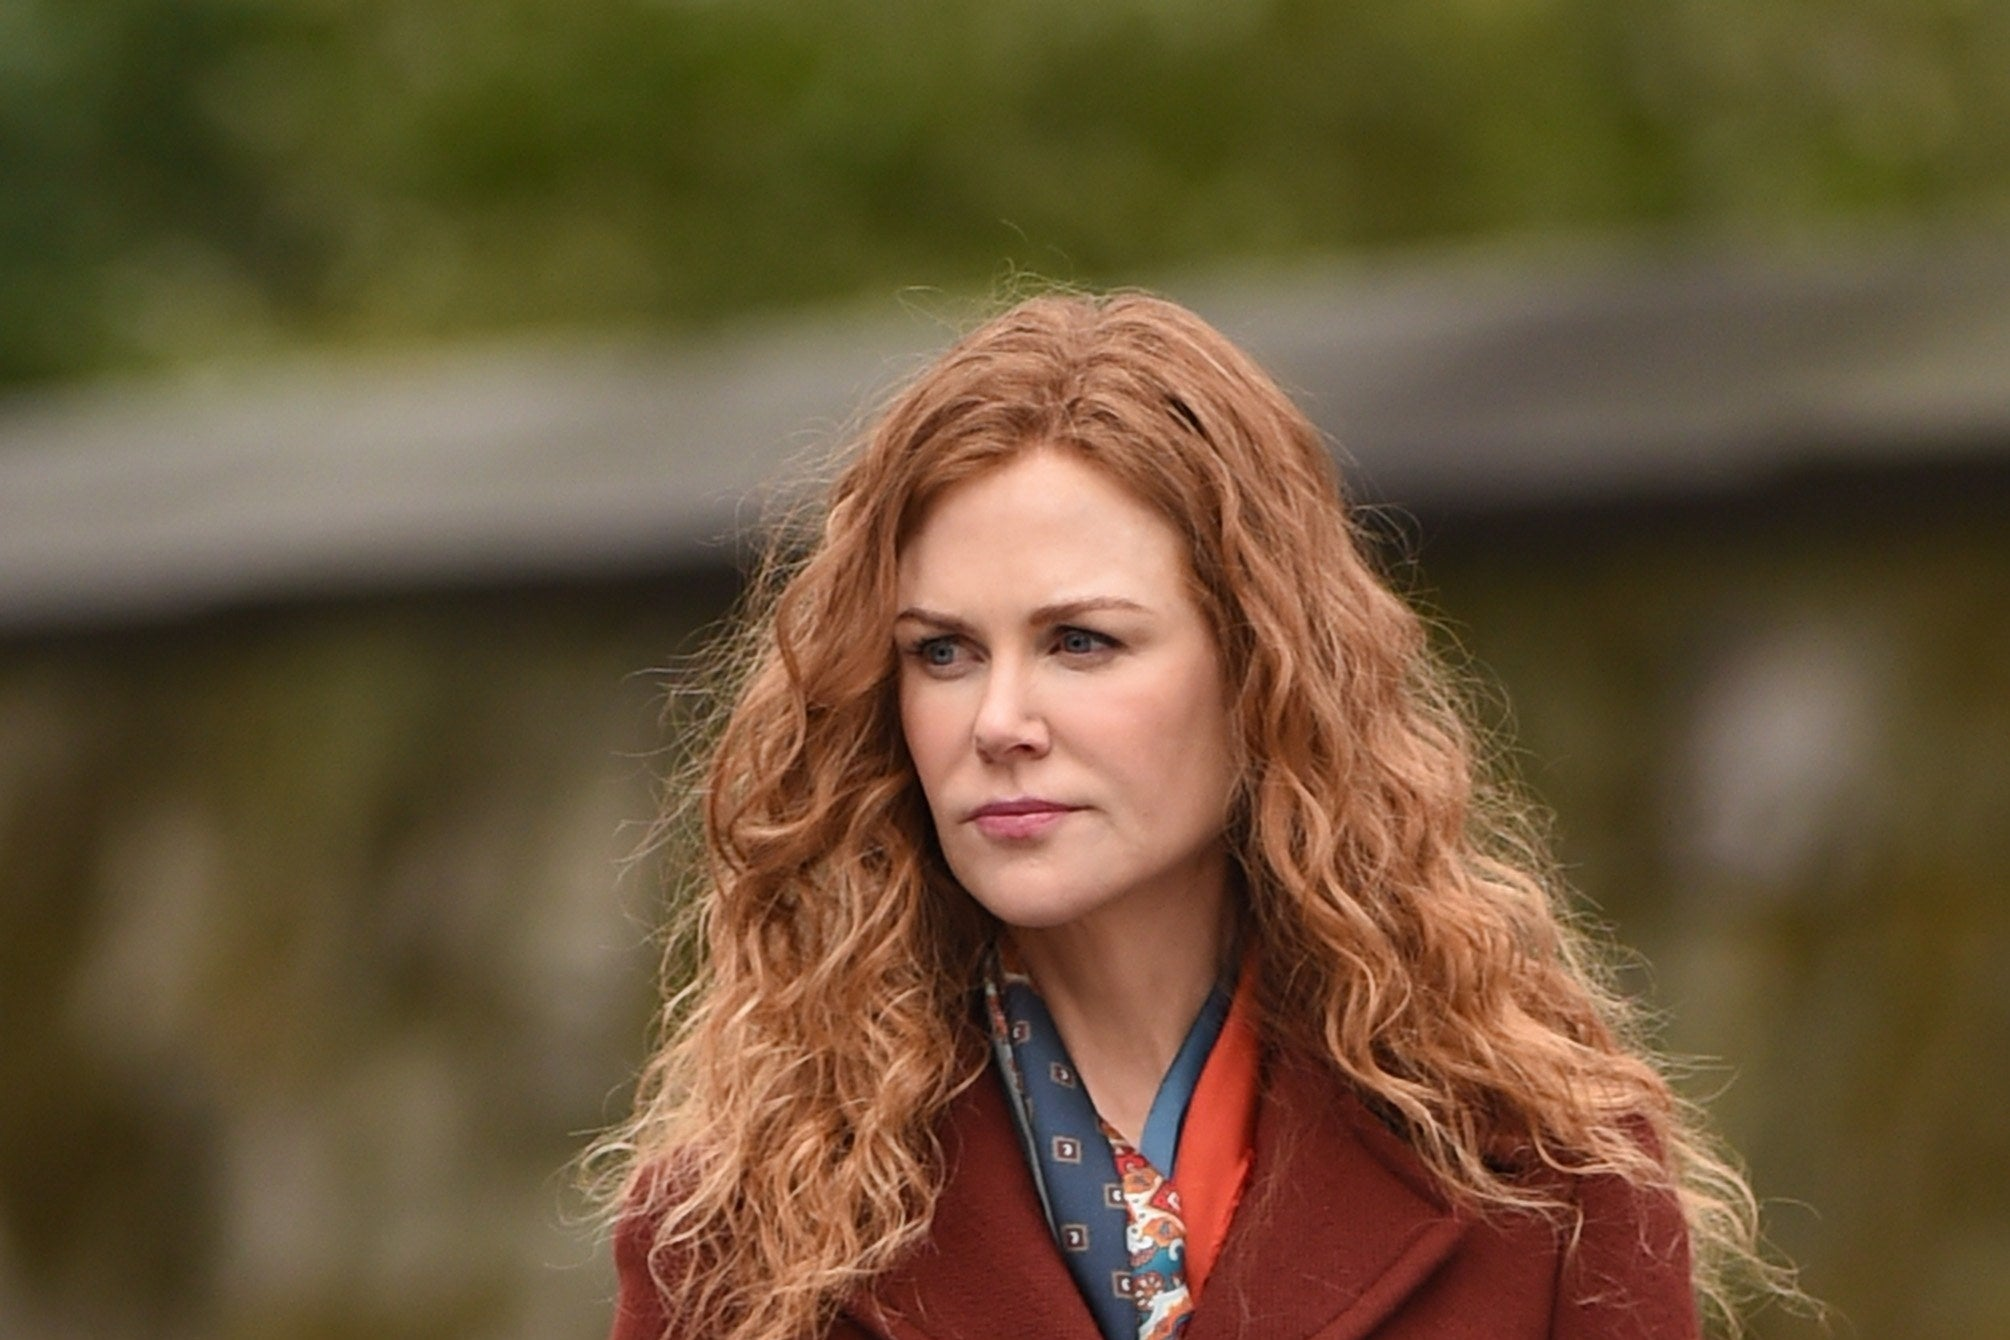 Nicole Kidman Opened Up About Her Daughters' Feelings During Lockdown